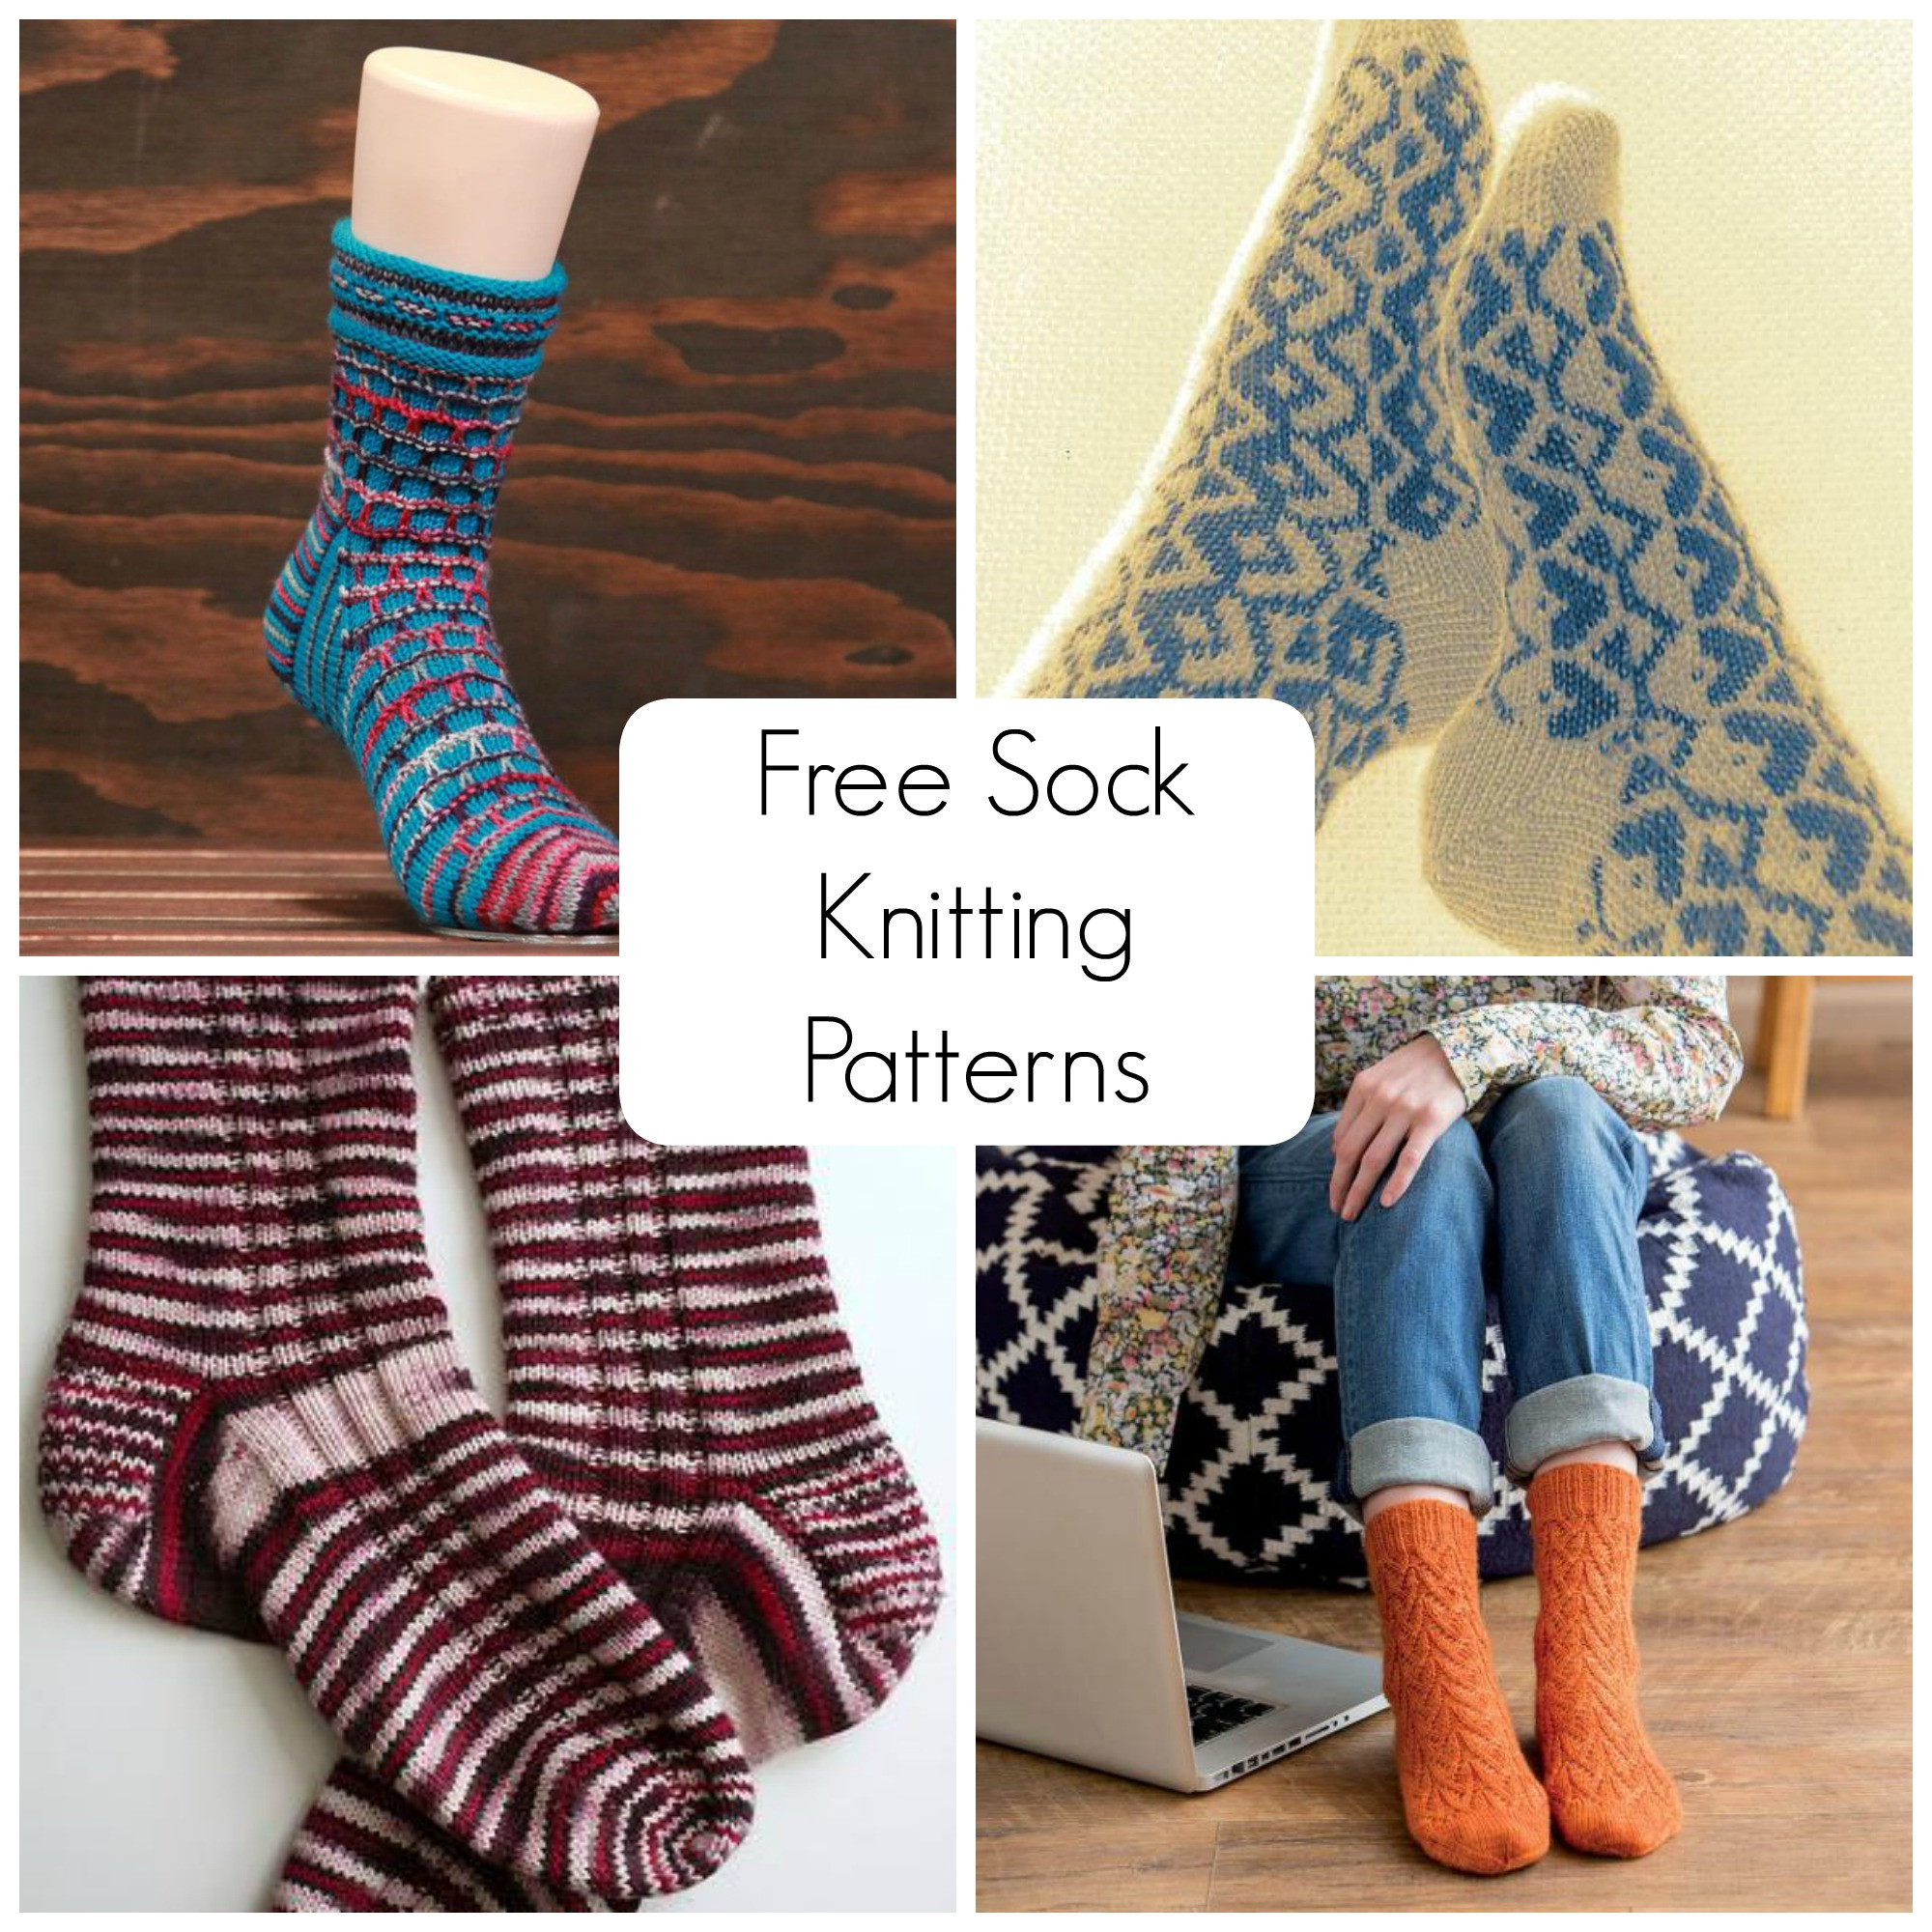 Sock Knitting Pattern Luxury Free sock Knitting Patterns to Download On Craftsy Of Unique 41 Photos sock Knitting Pattern